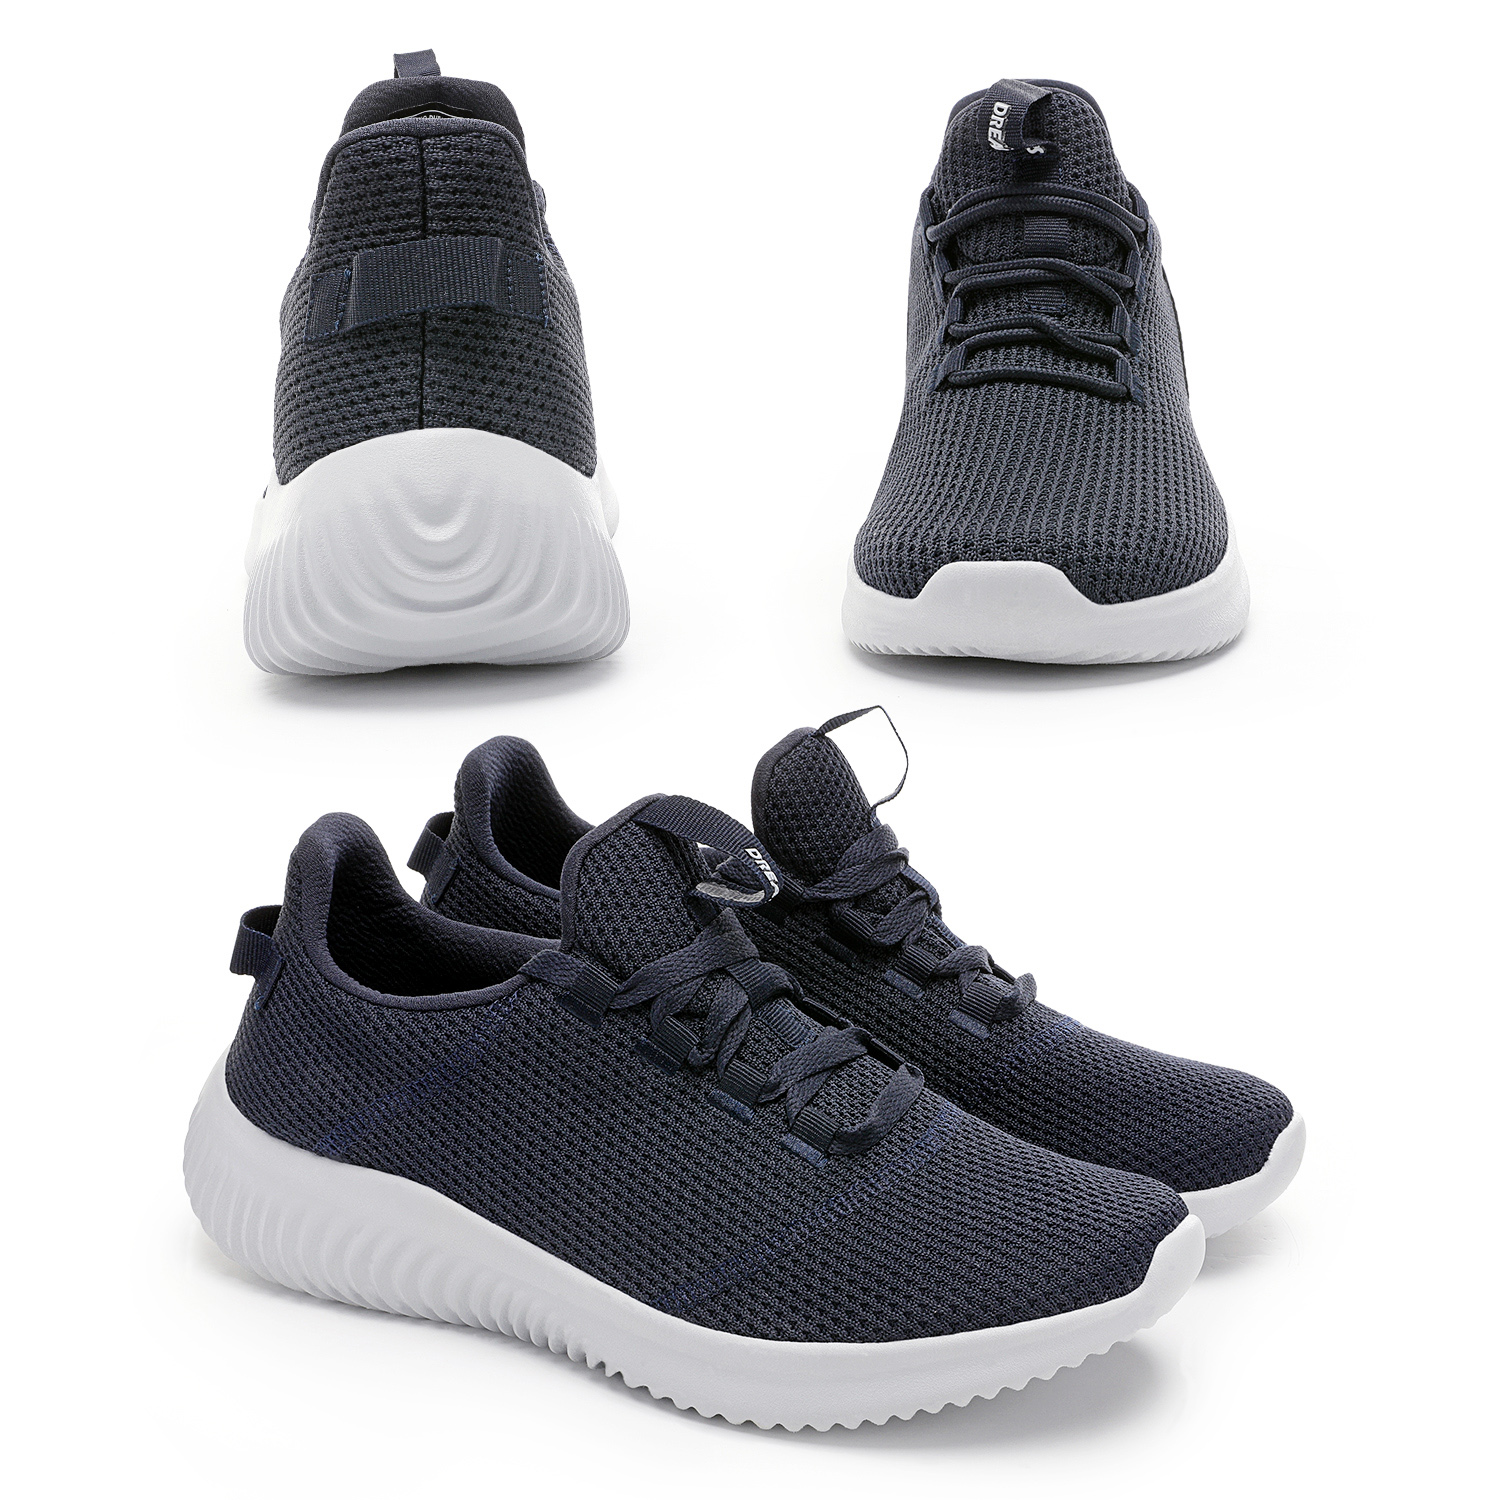 thumbnail 25 - Mens Running Shoes Lightweight Fashion Sneakers Comfort Walking Shoes